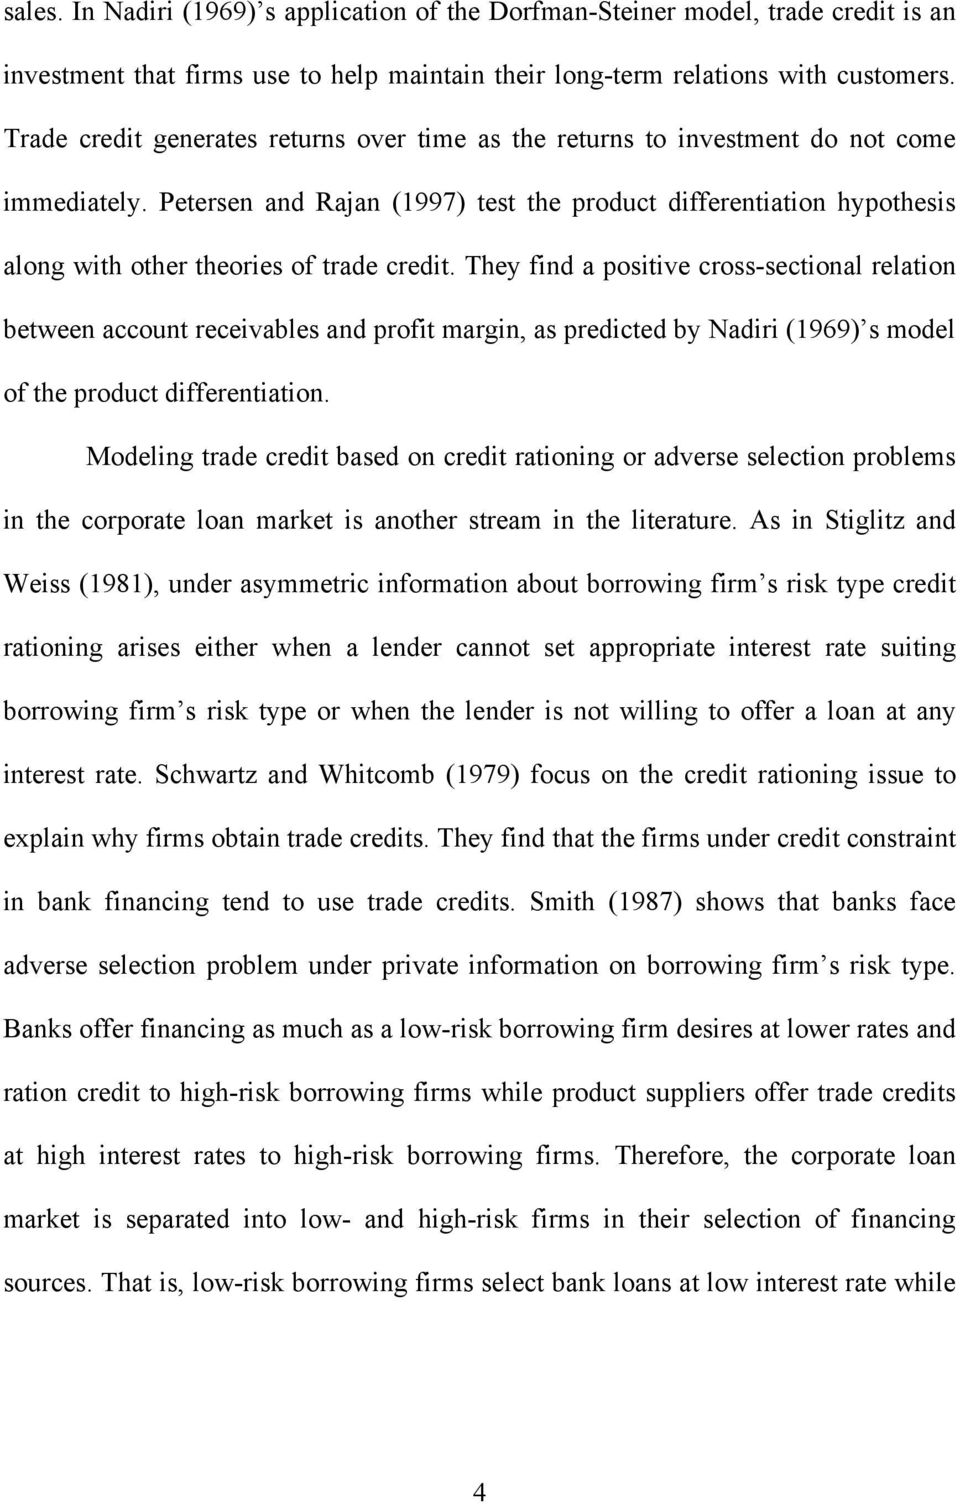 Petersen and Rajan (1997) test the product differentiation hypothesis along with other theories of trade credit.